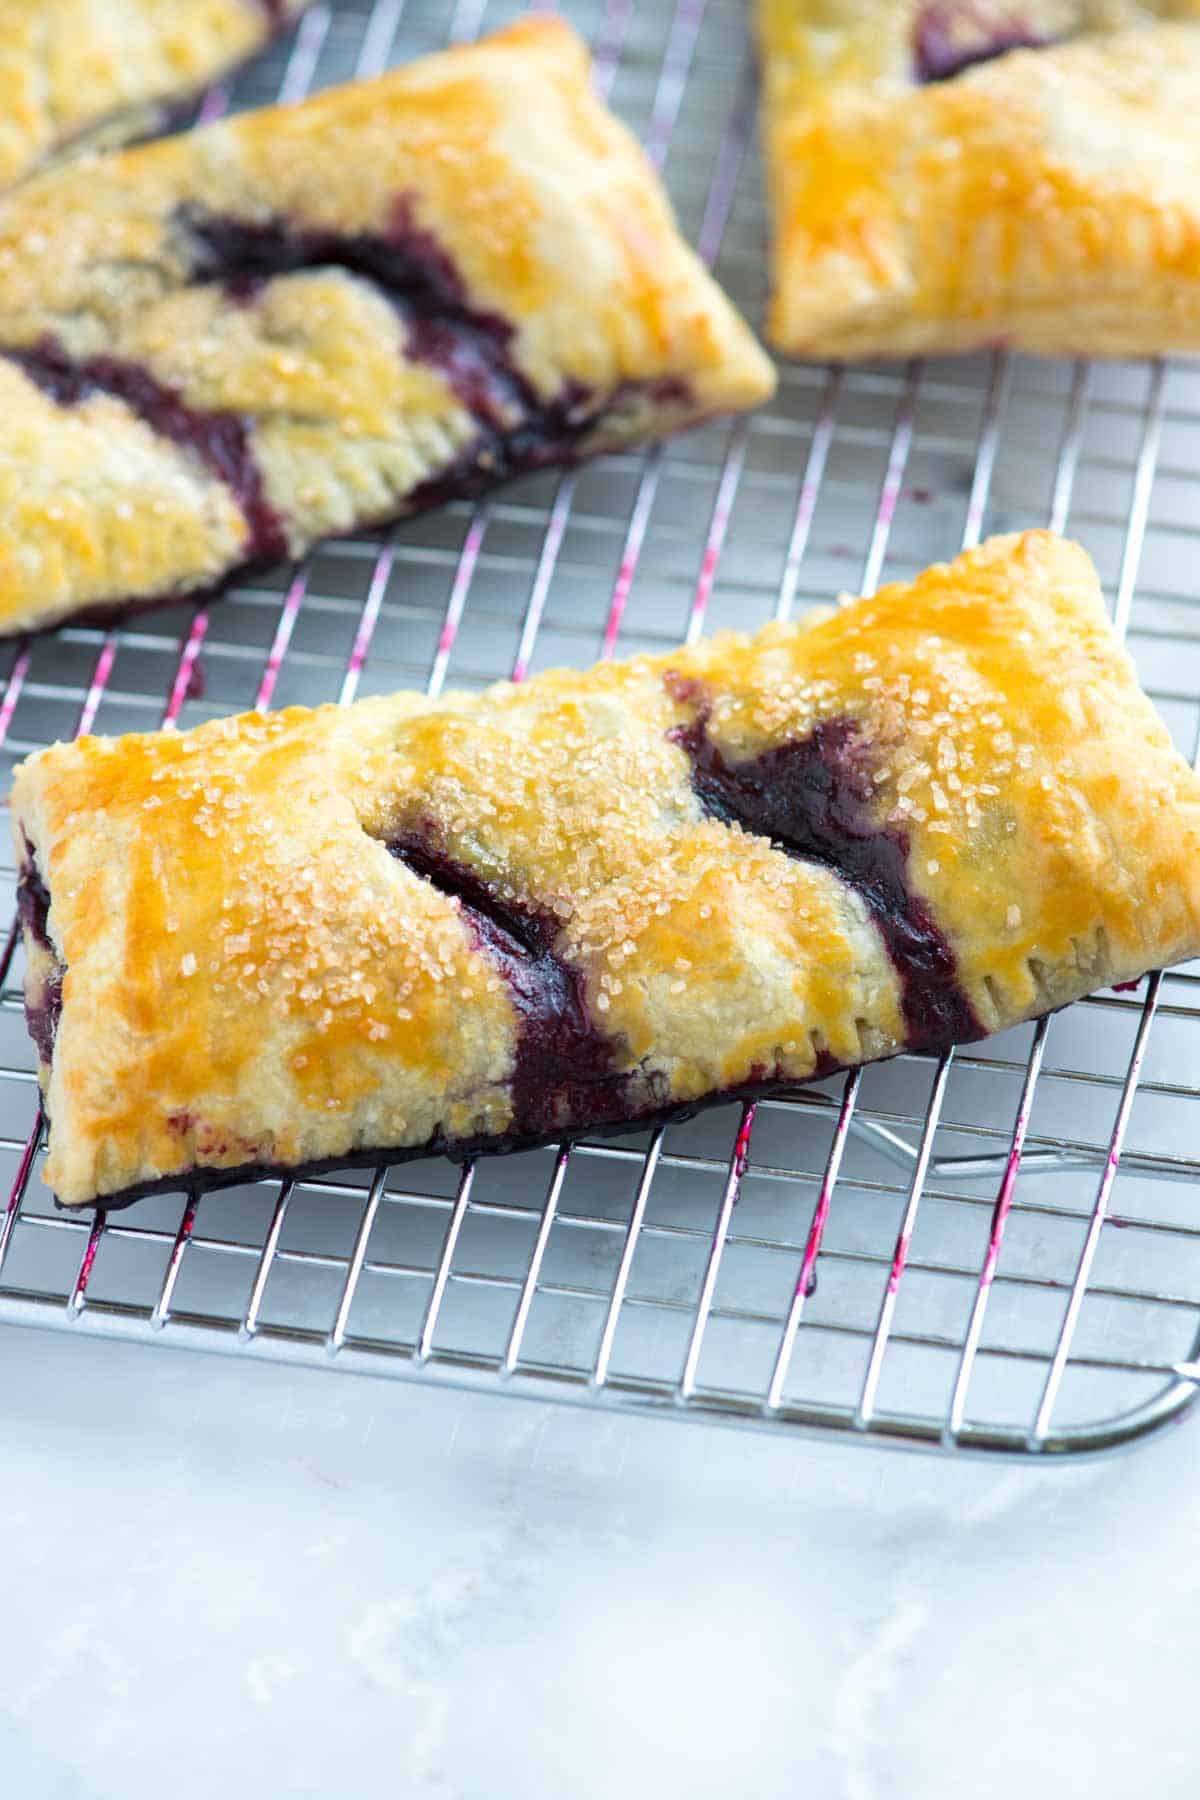 How to Make a Handheld Blueberry Pie